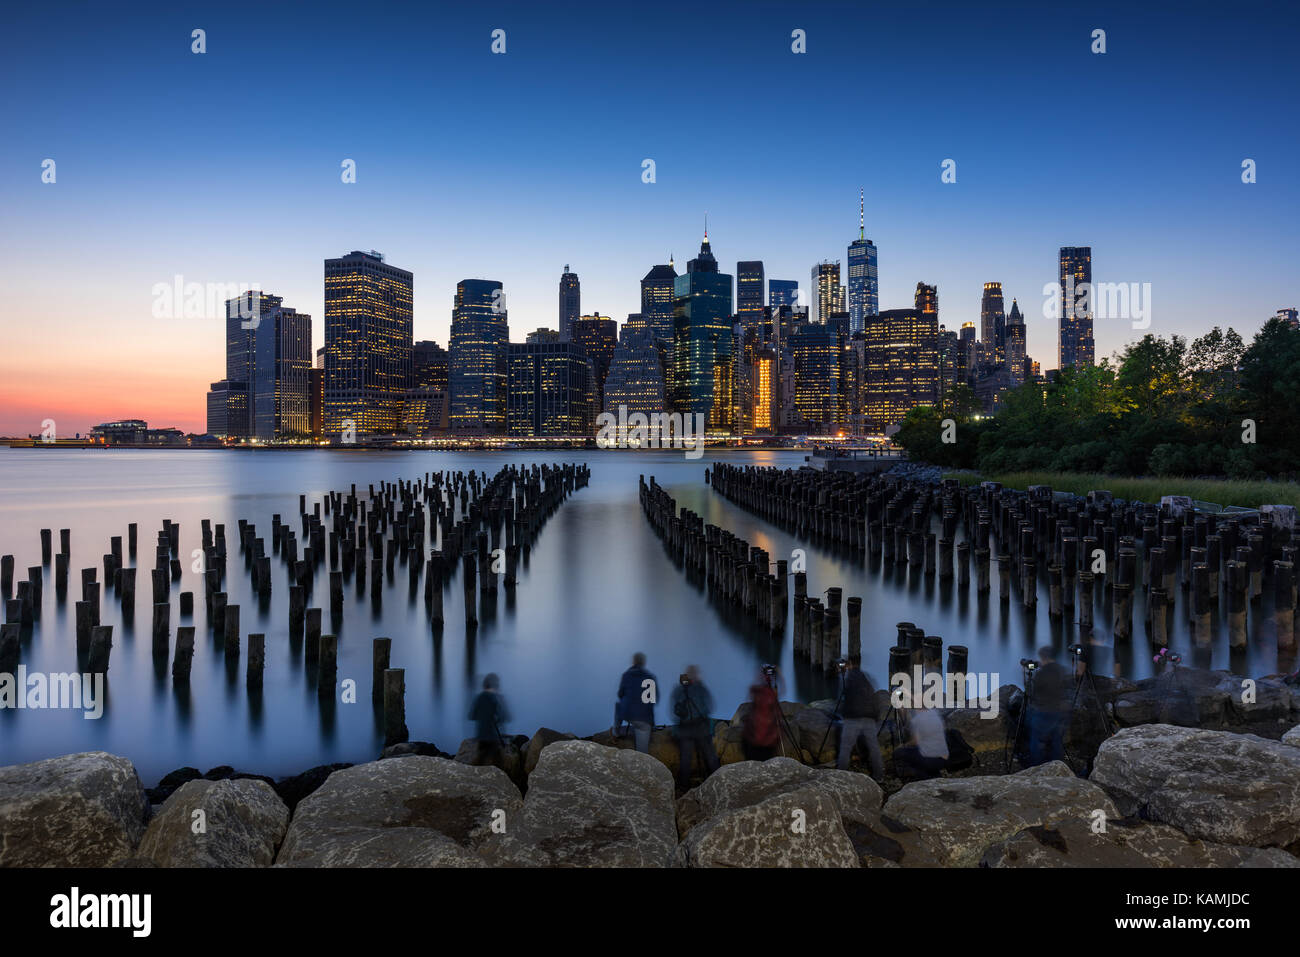 Gratte-ciel de Manhattan au coucher du soleil et de pieux en bois de Brooklyn Bridge Park. Manhattan, New York City Photo Stock